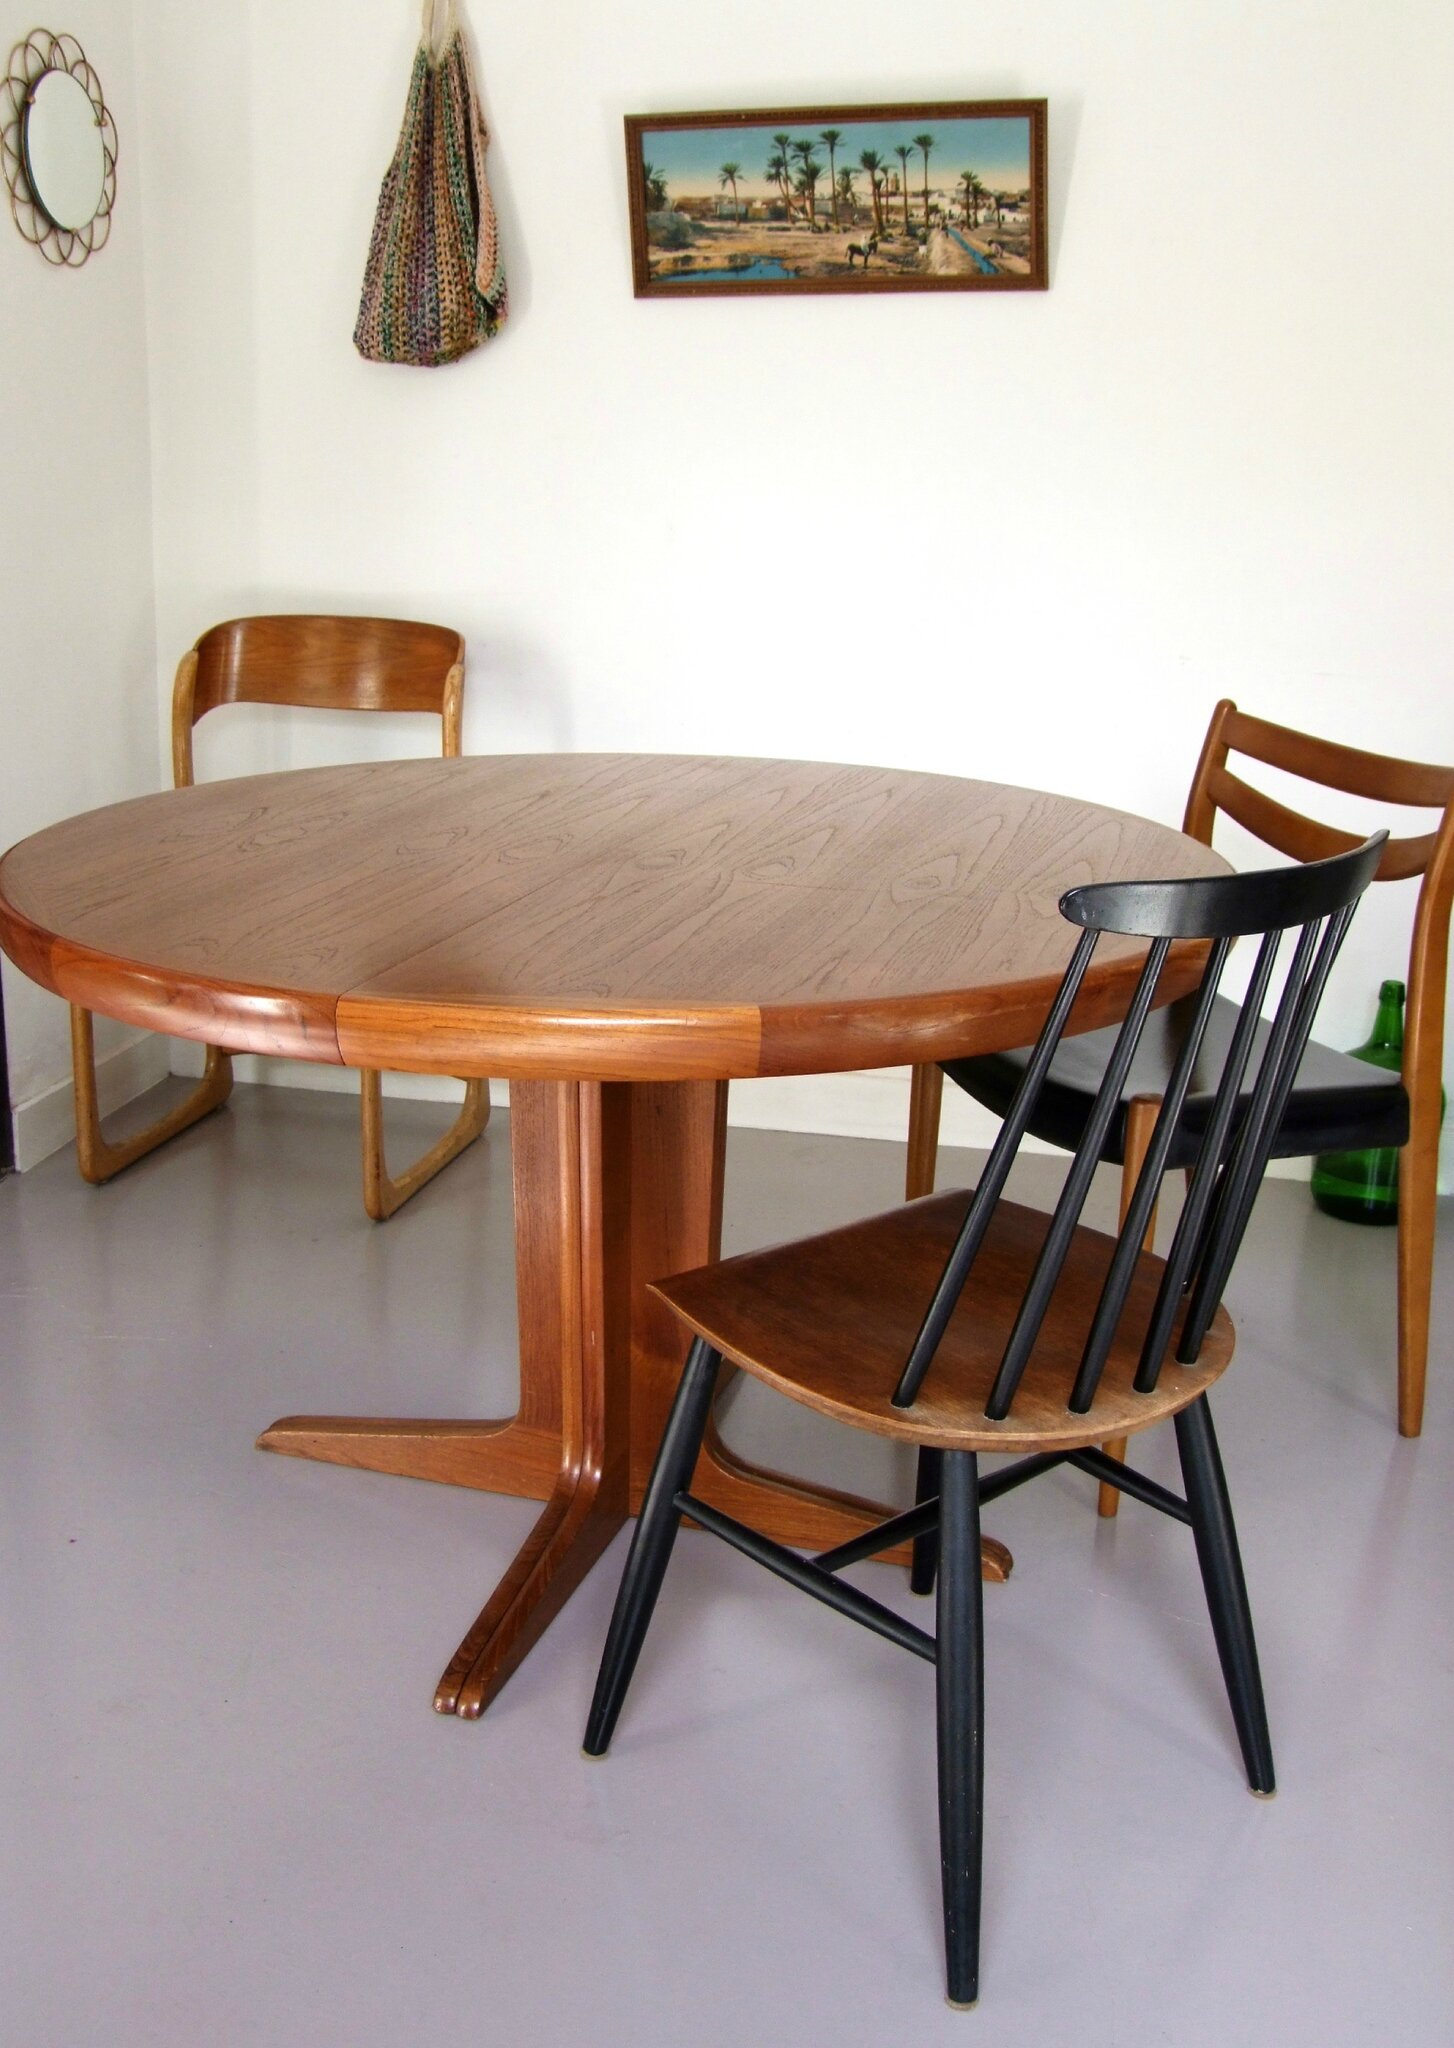 Table Ronde Scandinave Rallonge Table Ronde Extensible Scandinave Kofod Meubles Vintage Pataluna